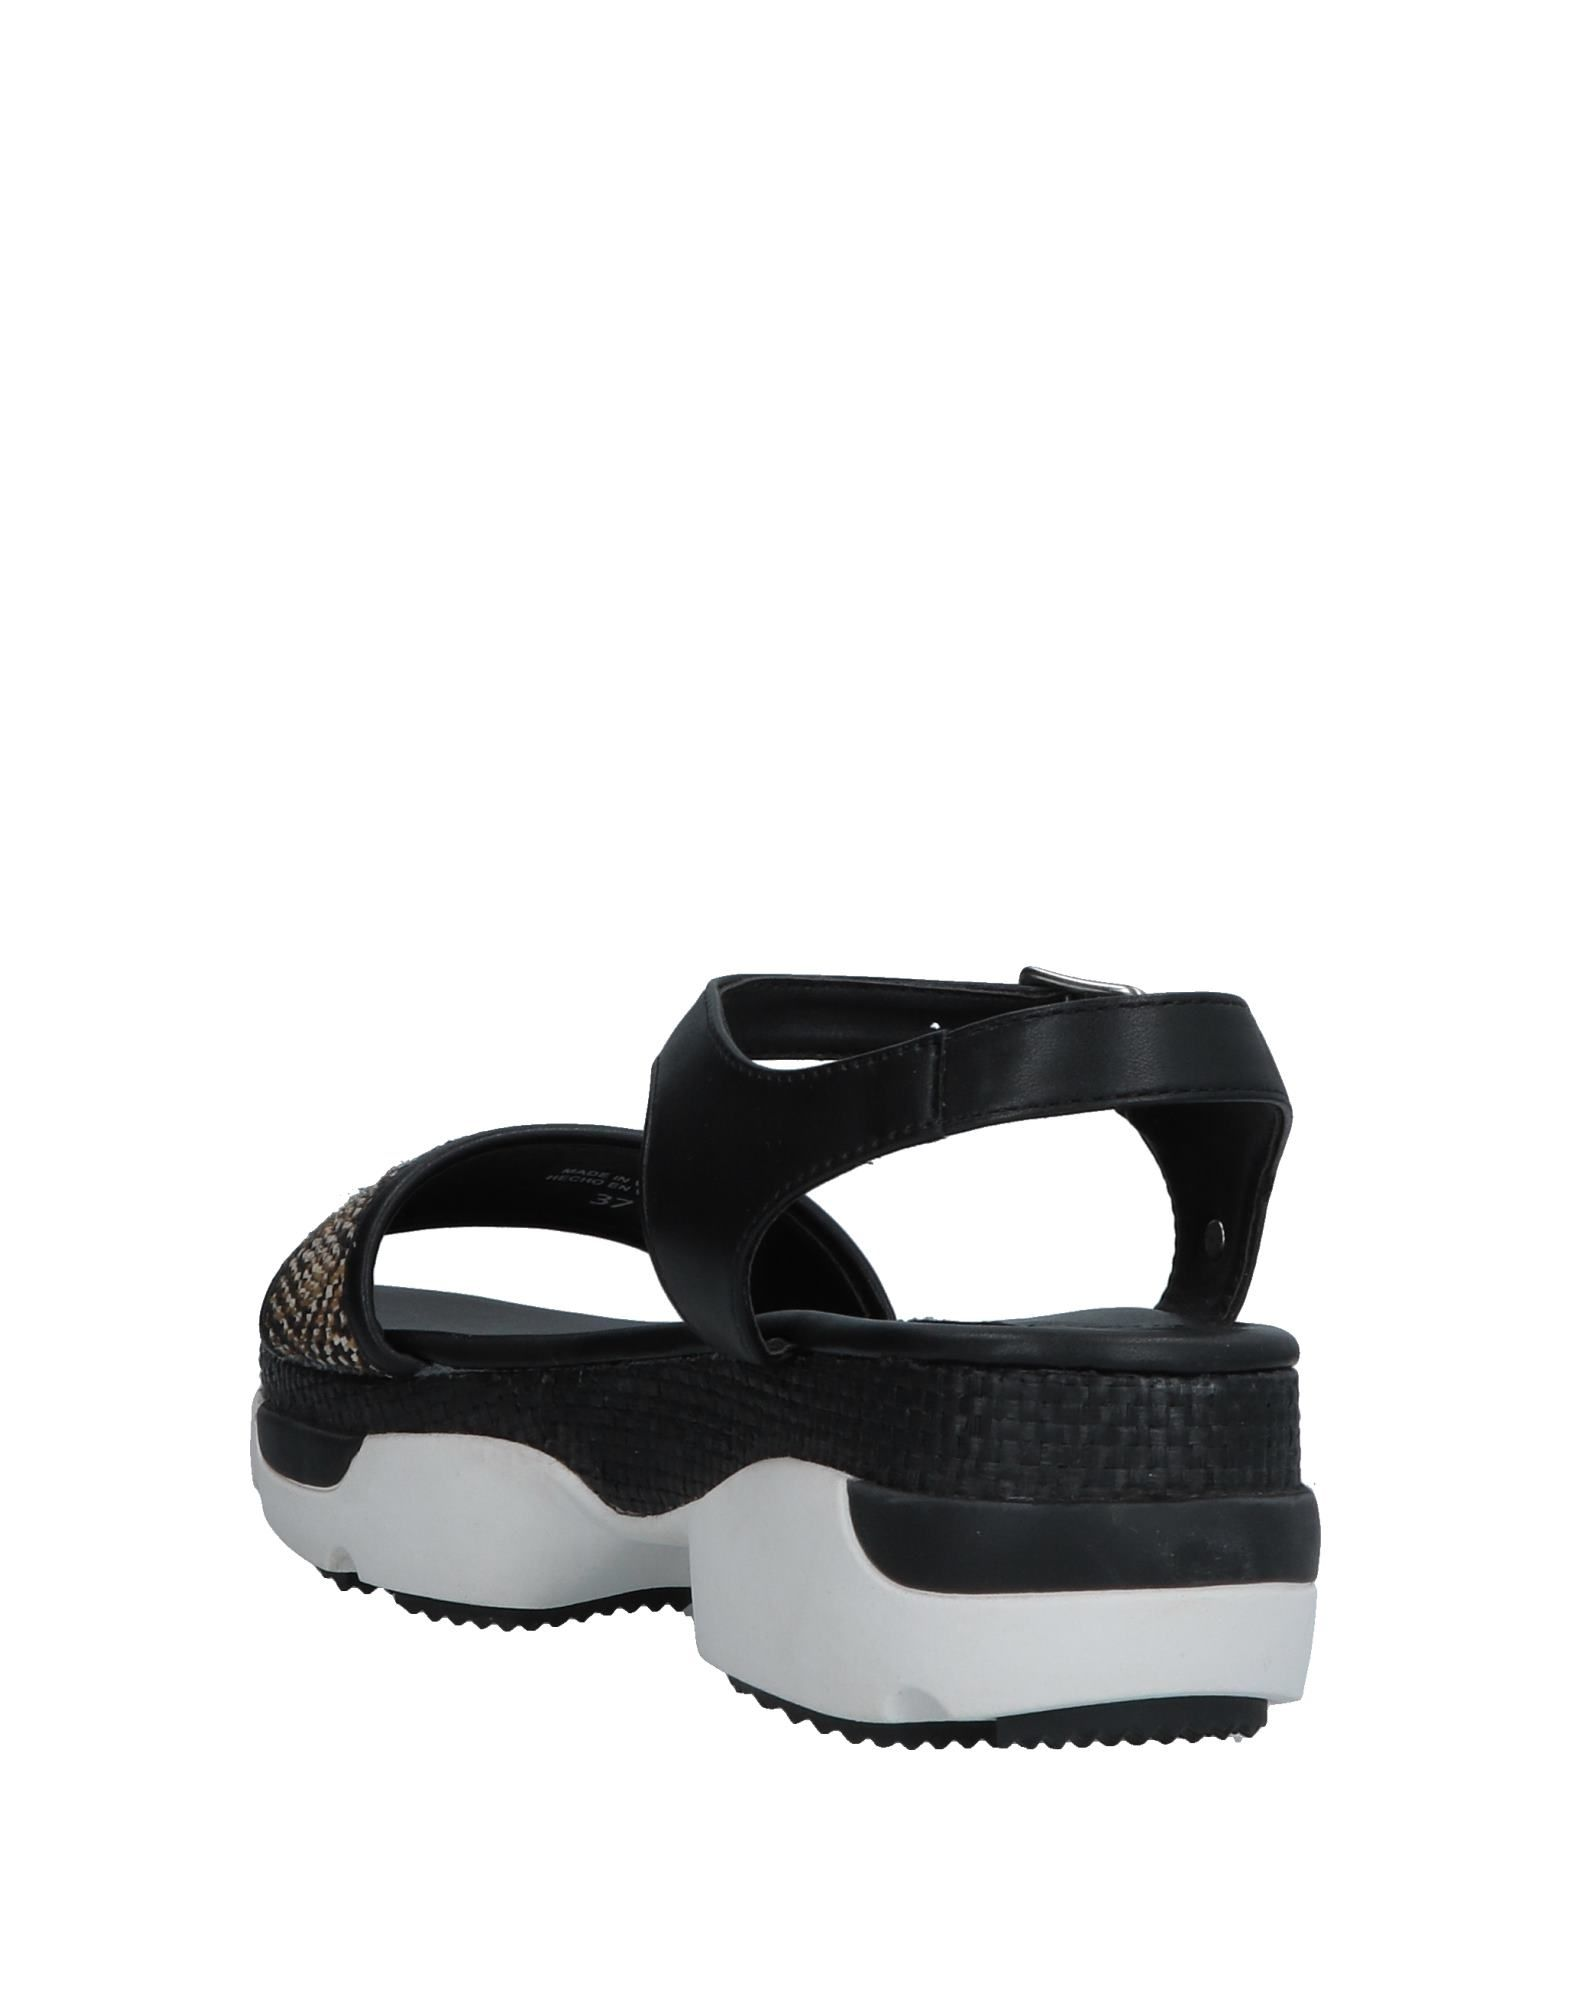 Gioseppo Gioseppo Gioseppo Sandals - Women Gioseppo Sandals online on  United Kingdom - 11576030GD 56a646